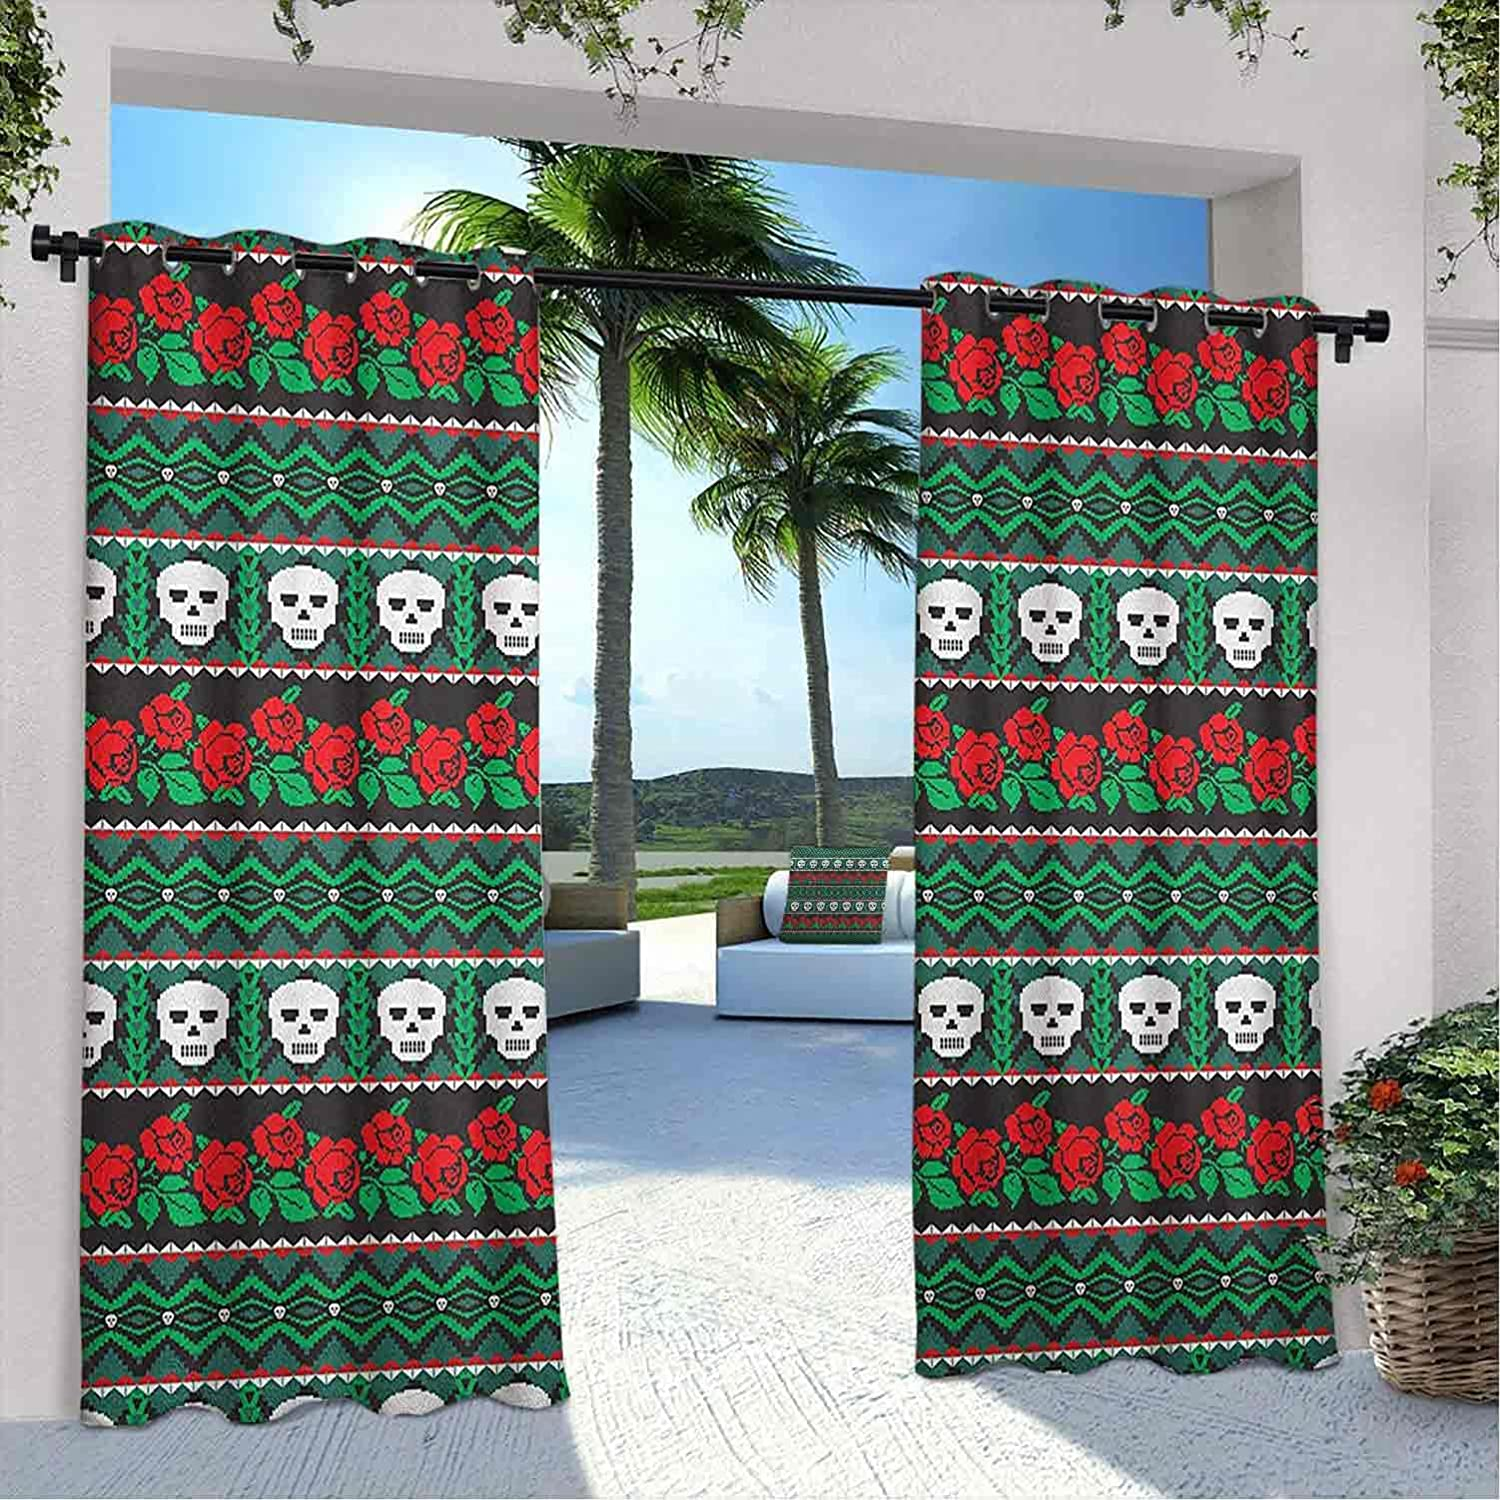 Terrace Outdoor Skull Ranking TOP18 Curtain Financial sales sale Mexican Roses Folkloric K and Art